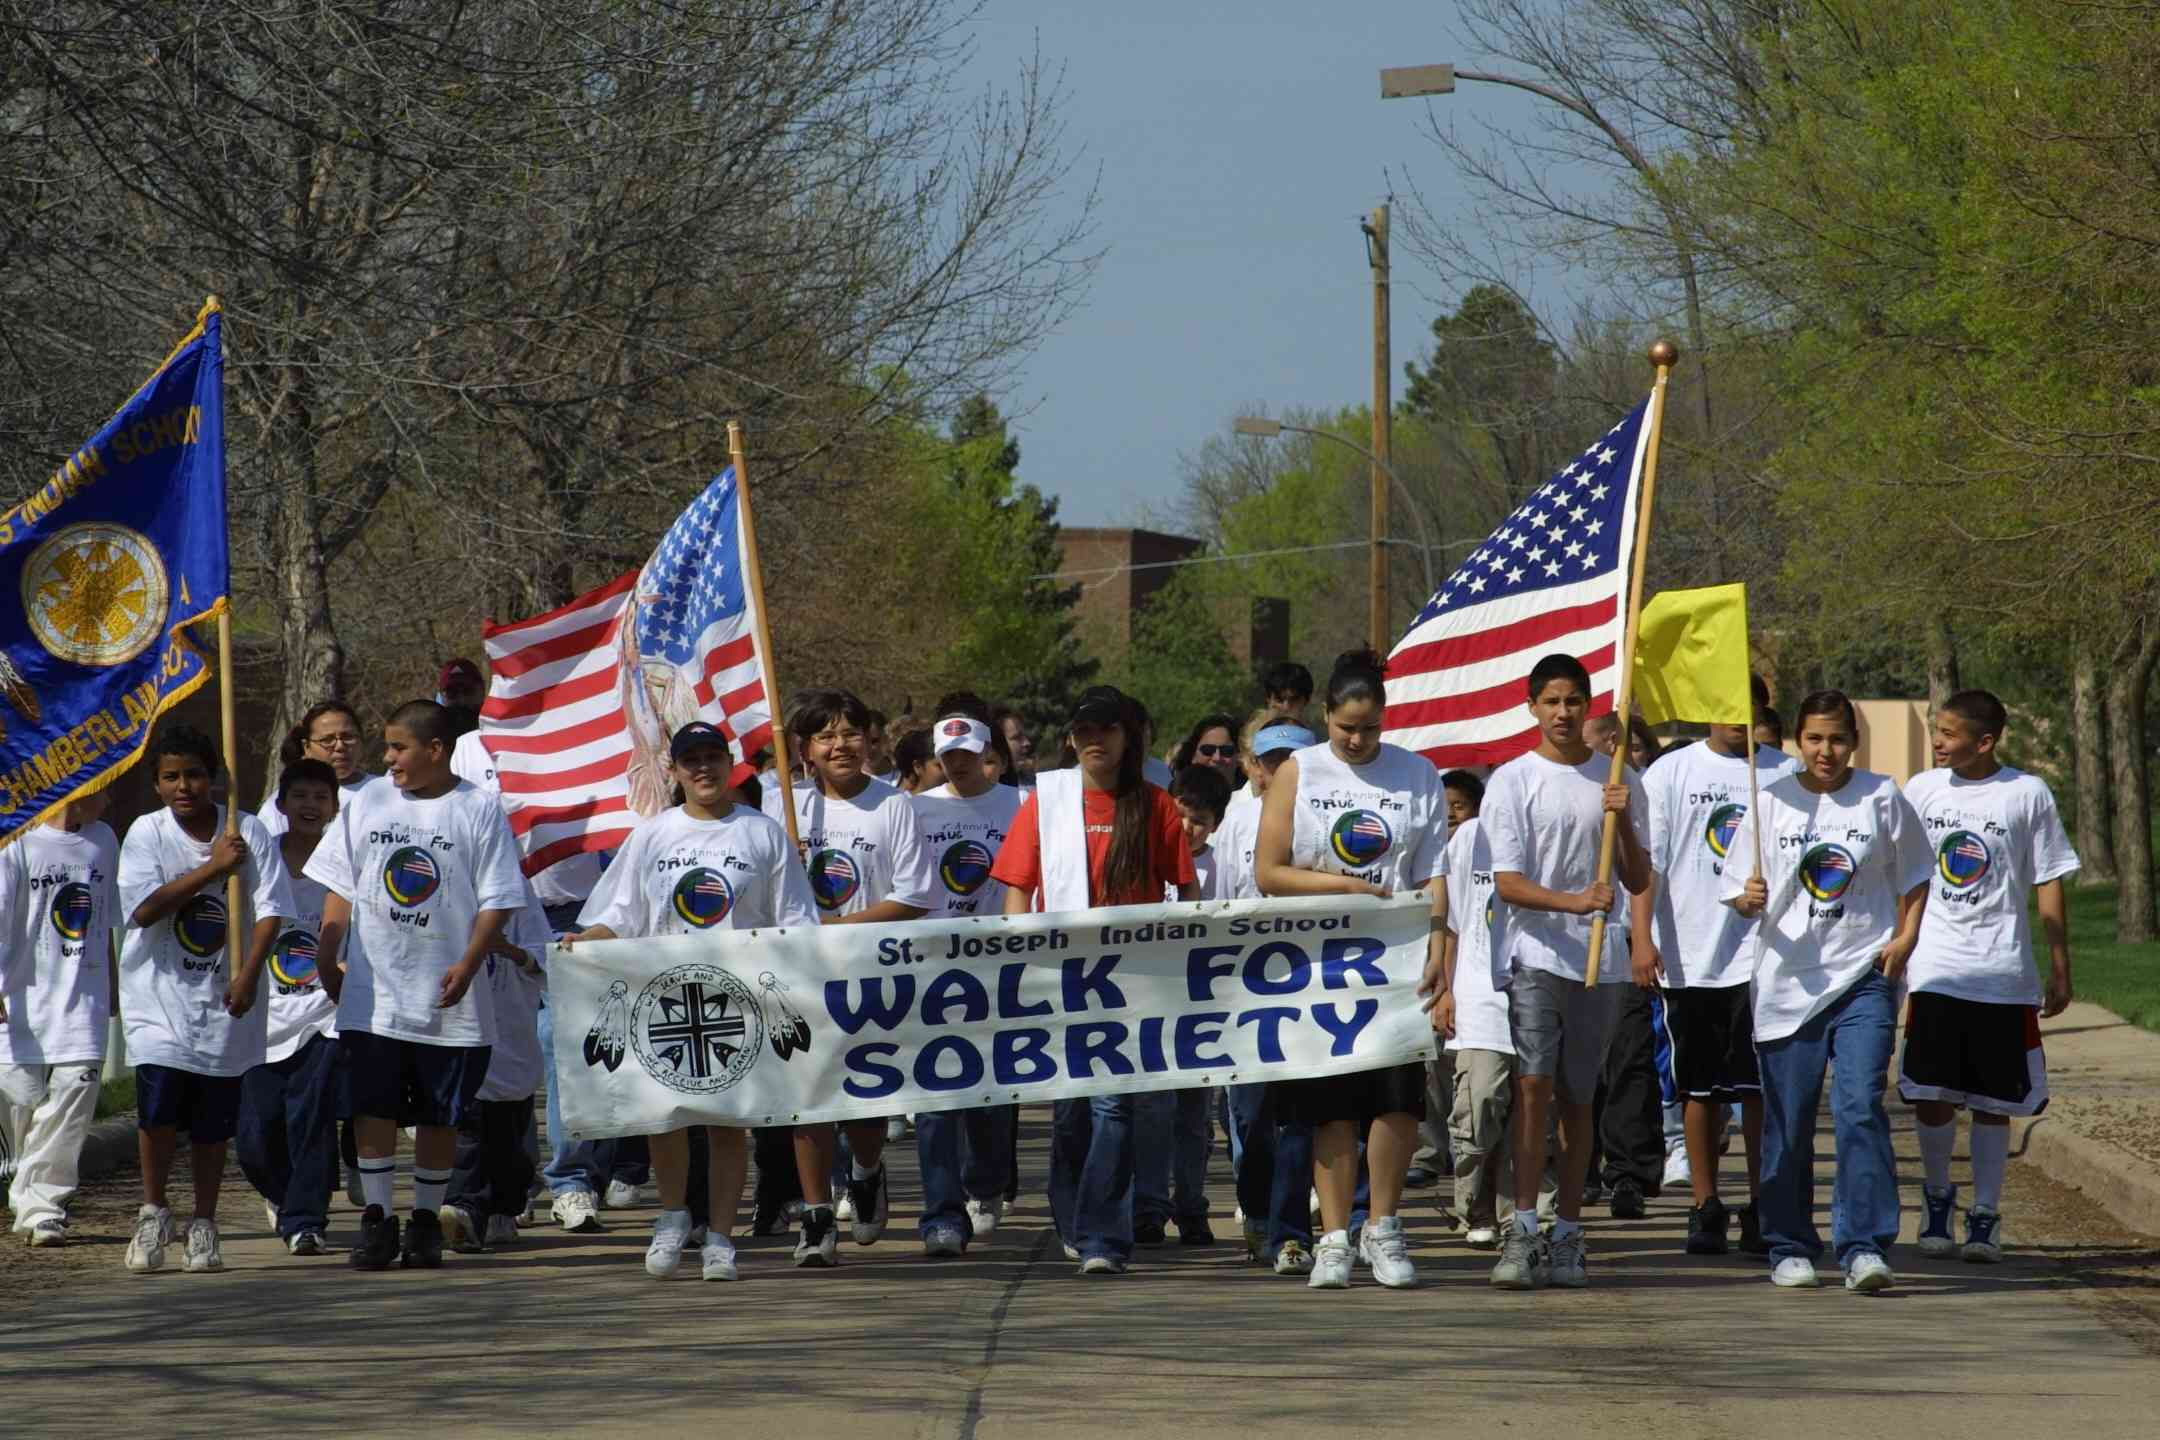 Last year's spring Sobriety Walk at St. Joseph's Indian School.